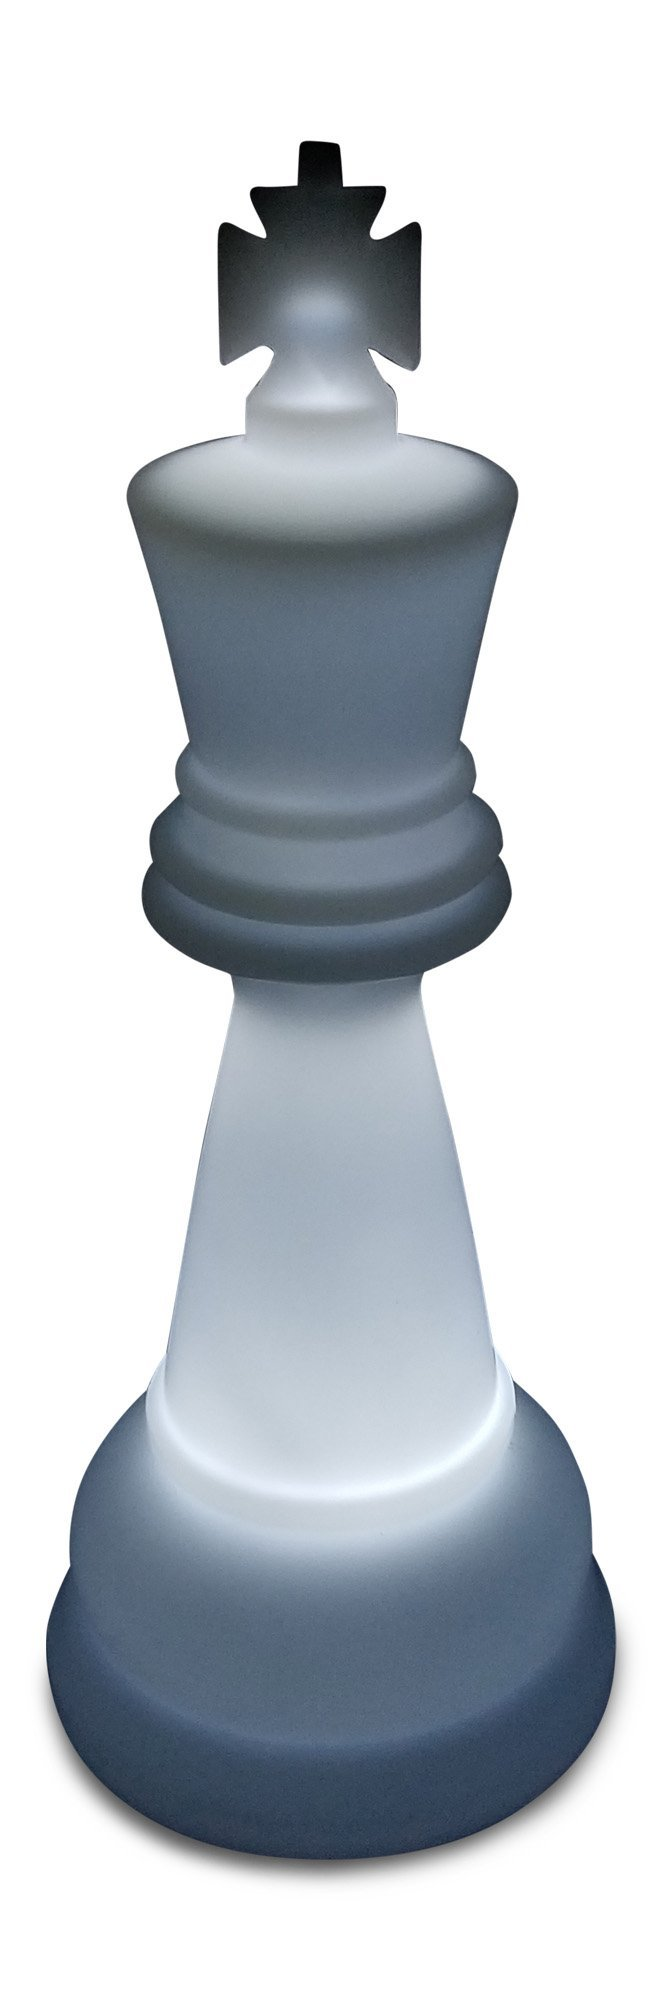 MegaChess 48 Inch Perfect King Light-Up Giant Chess Piece - White |  | MegaChess.com